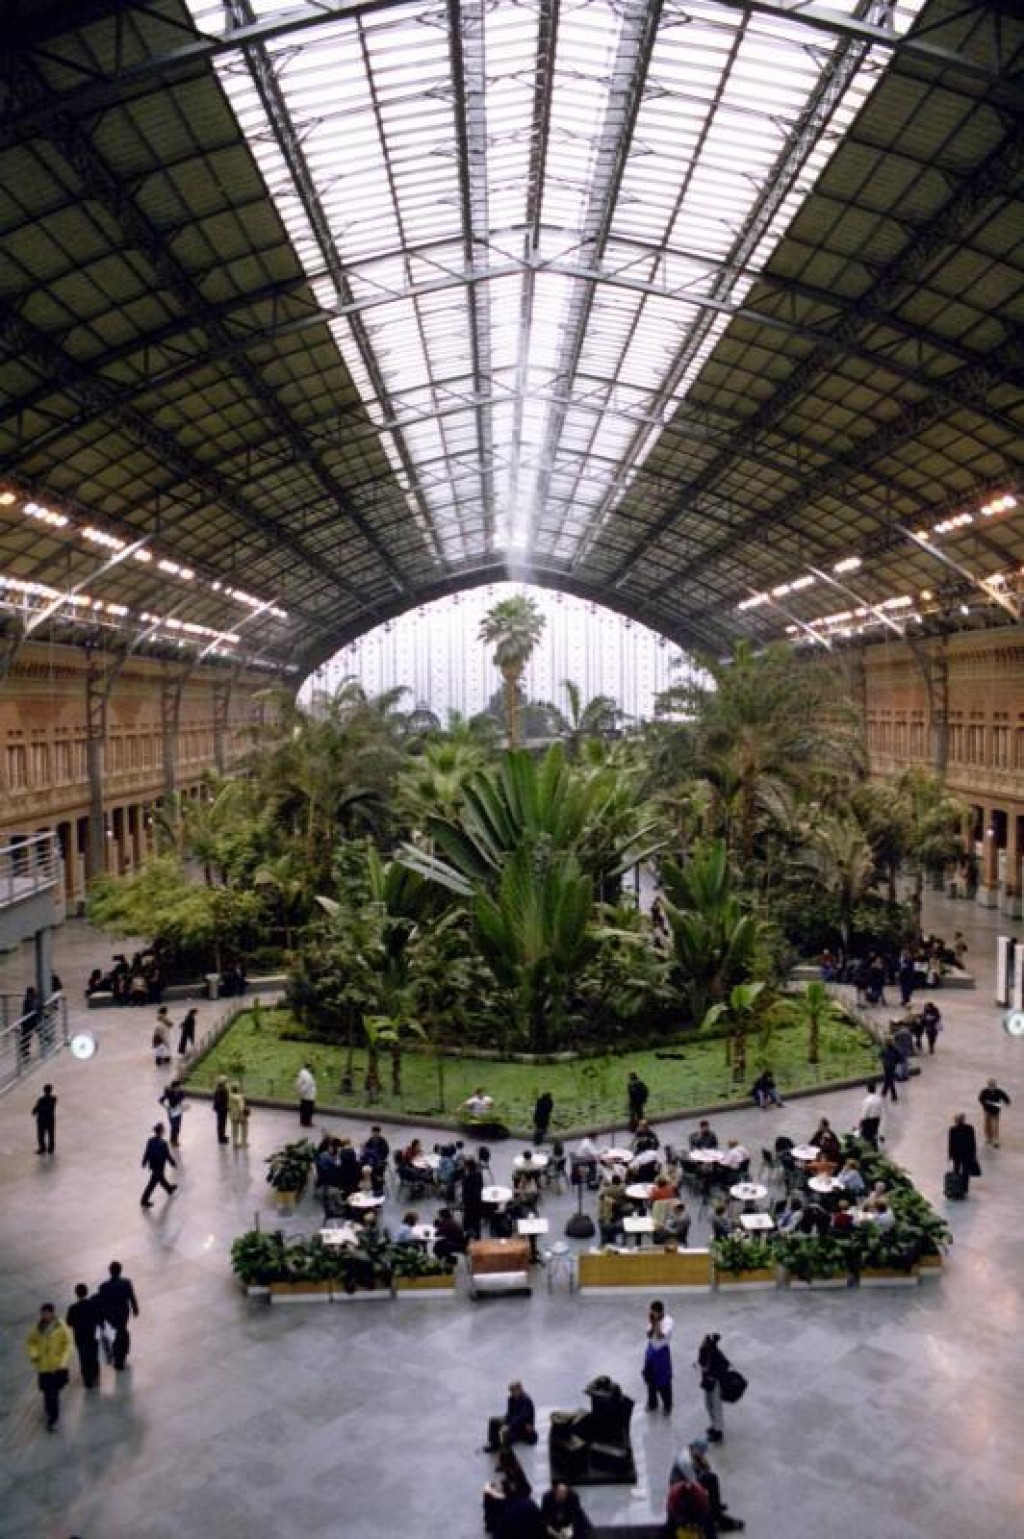 This is a train station Atocha, complete with its own tropical forest.  This has to be the coolest train station we've ever been in. Except Orsay. But that's not a train station any more. Anyways...